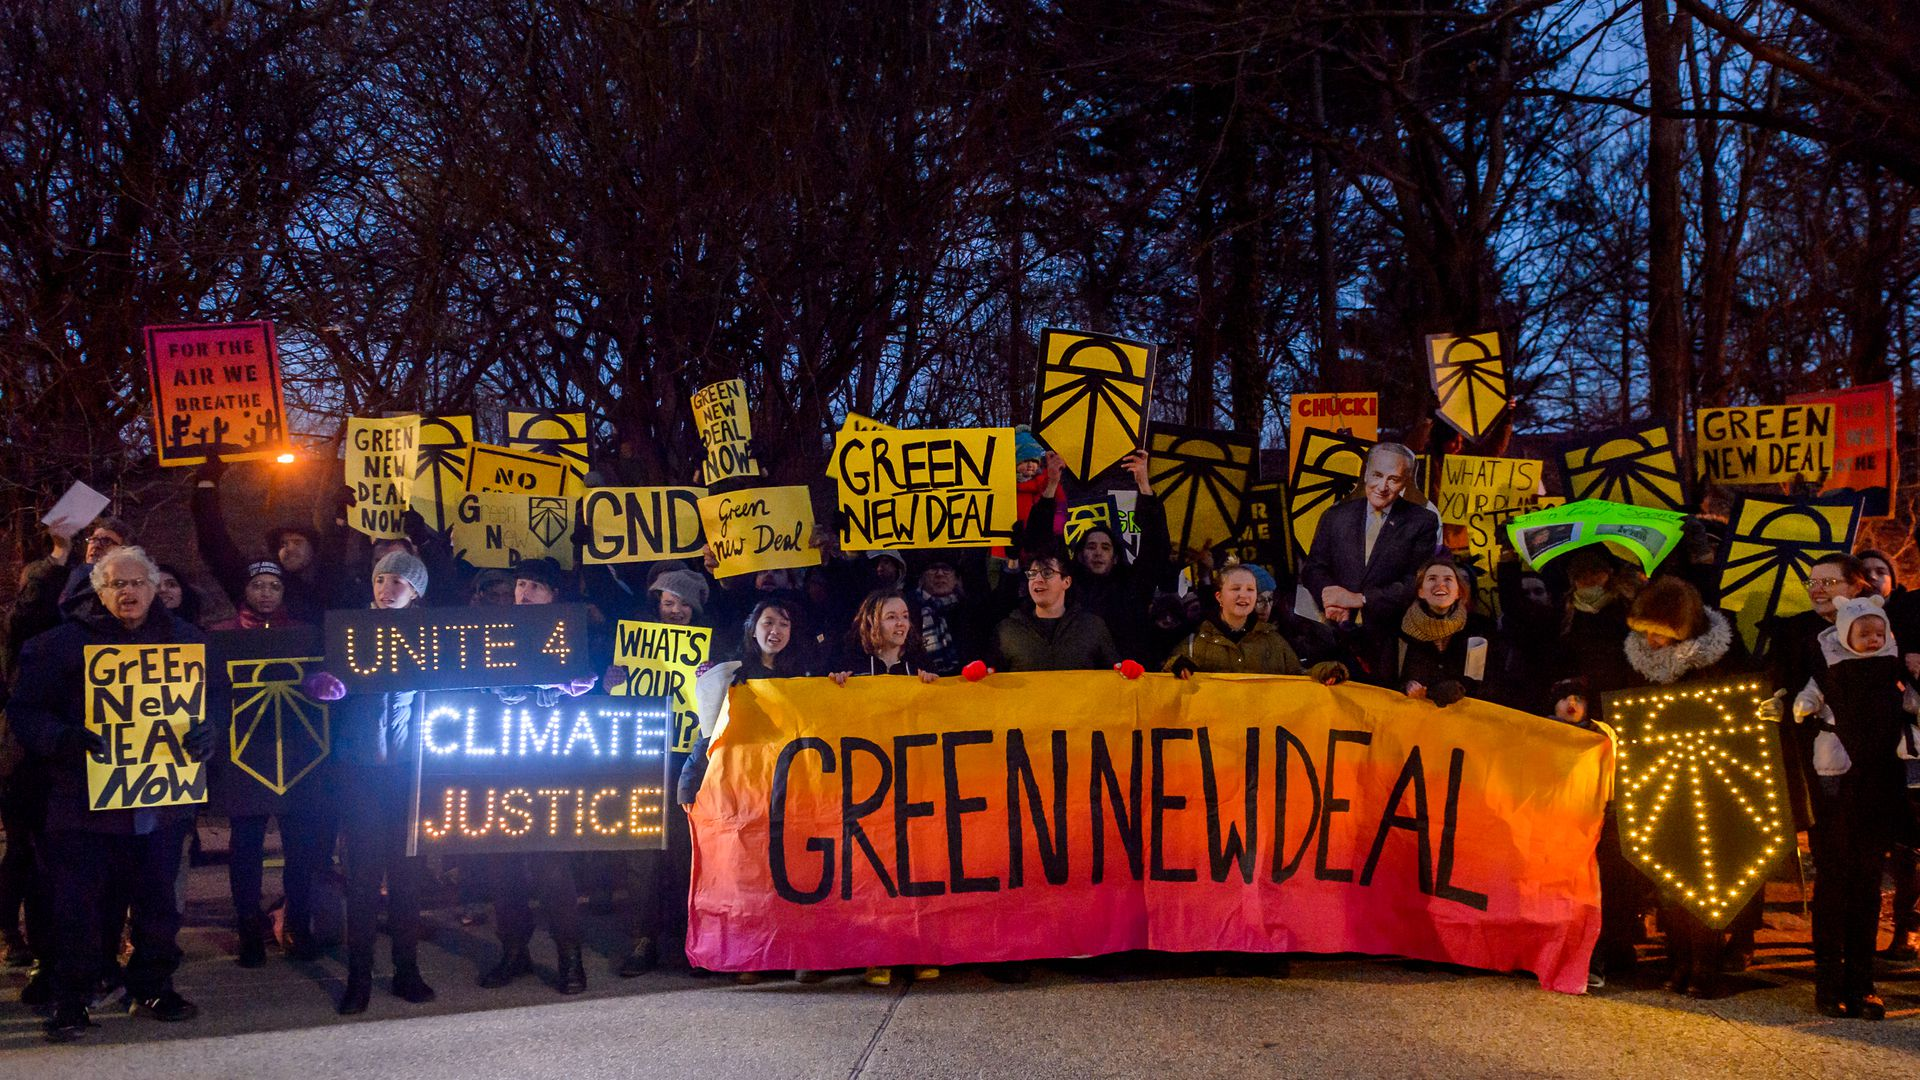 "In this image, a line of demonstrators holding various signs support an orange banner that says ""Green New Deal."""